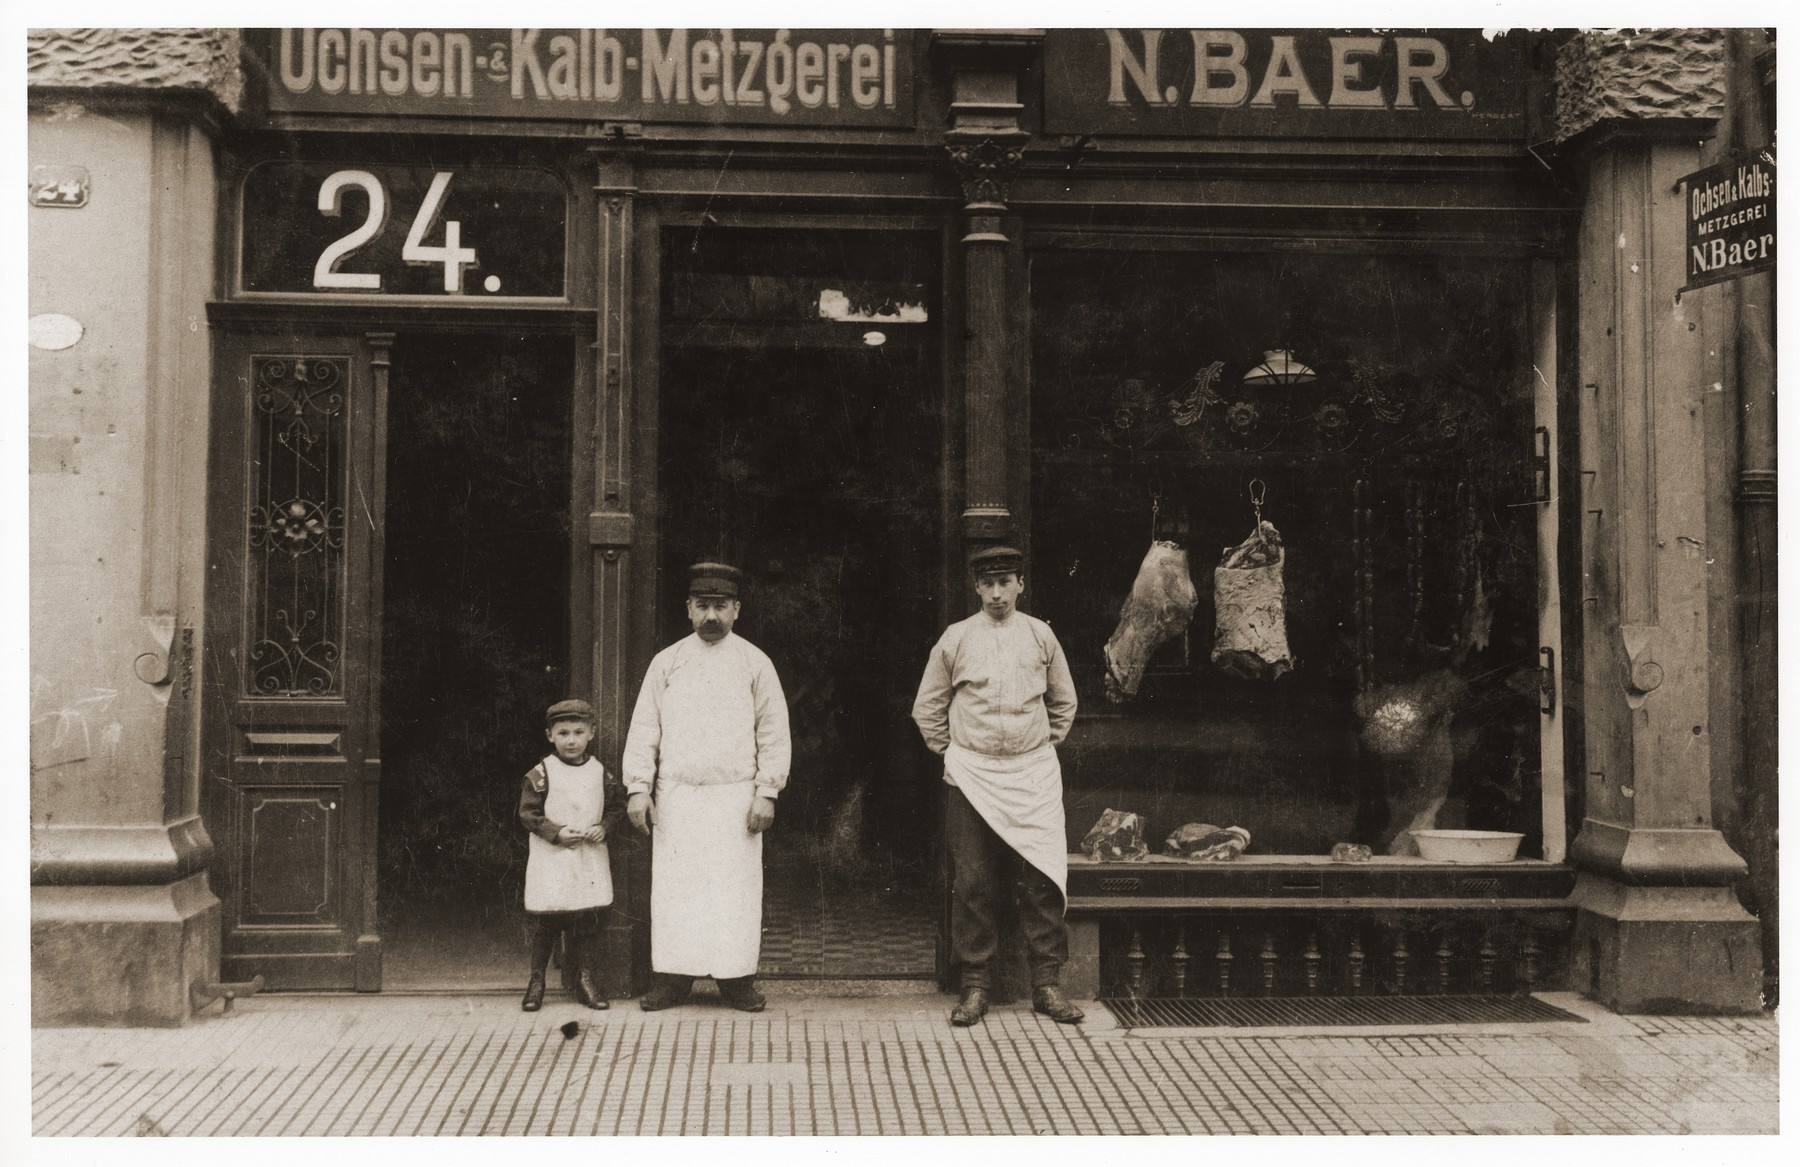 N. Baer (center), the donor's grandfather, poses with members of his family in front of their butcher shop in Frankfurt am Main.